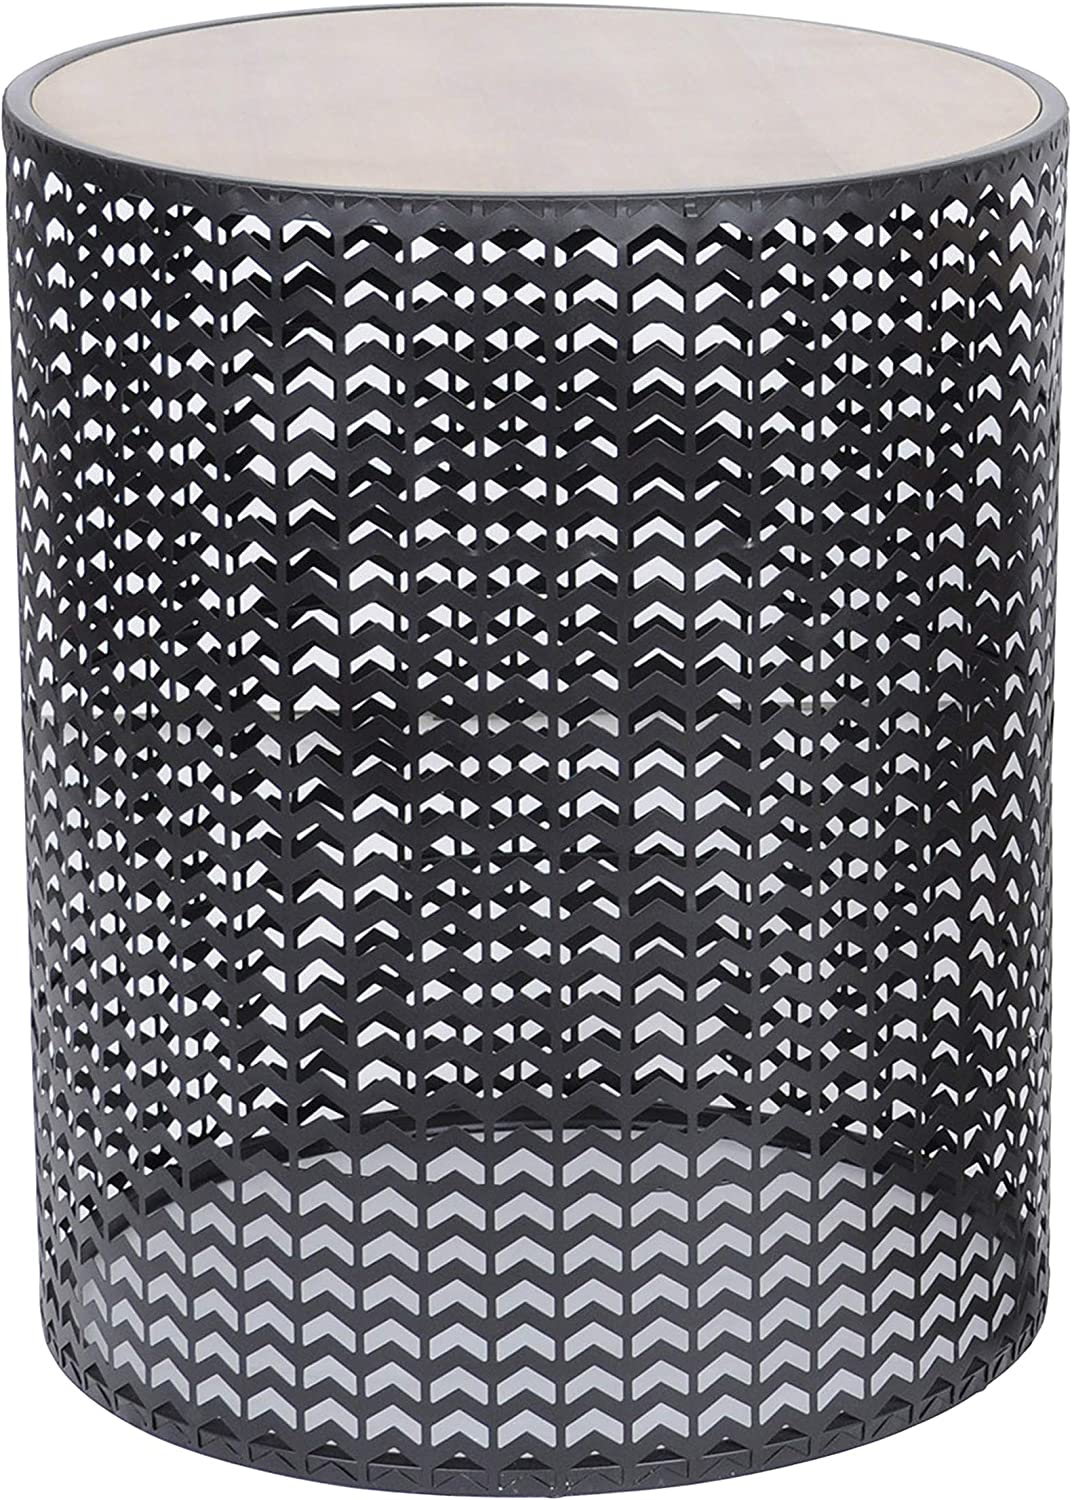 Decor Therapy FR11213 Outdoor Accent Table, 22 inch high, Black